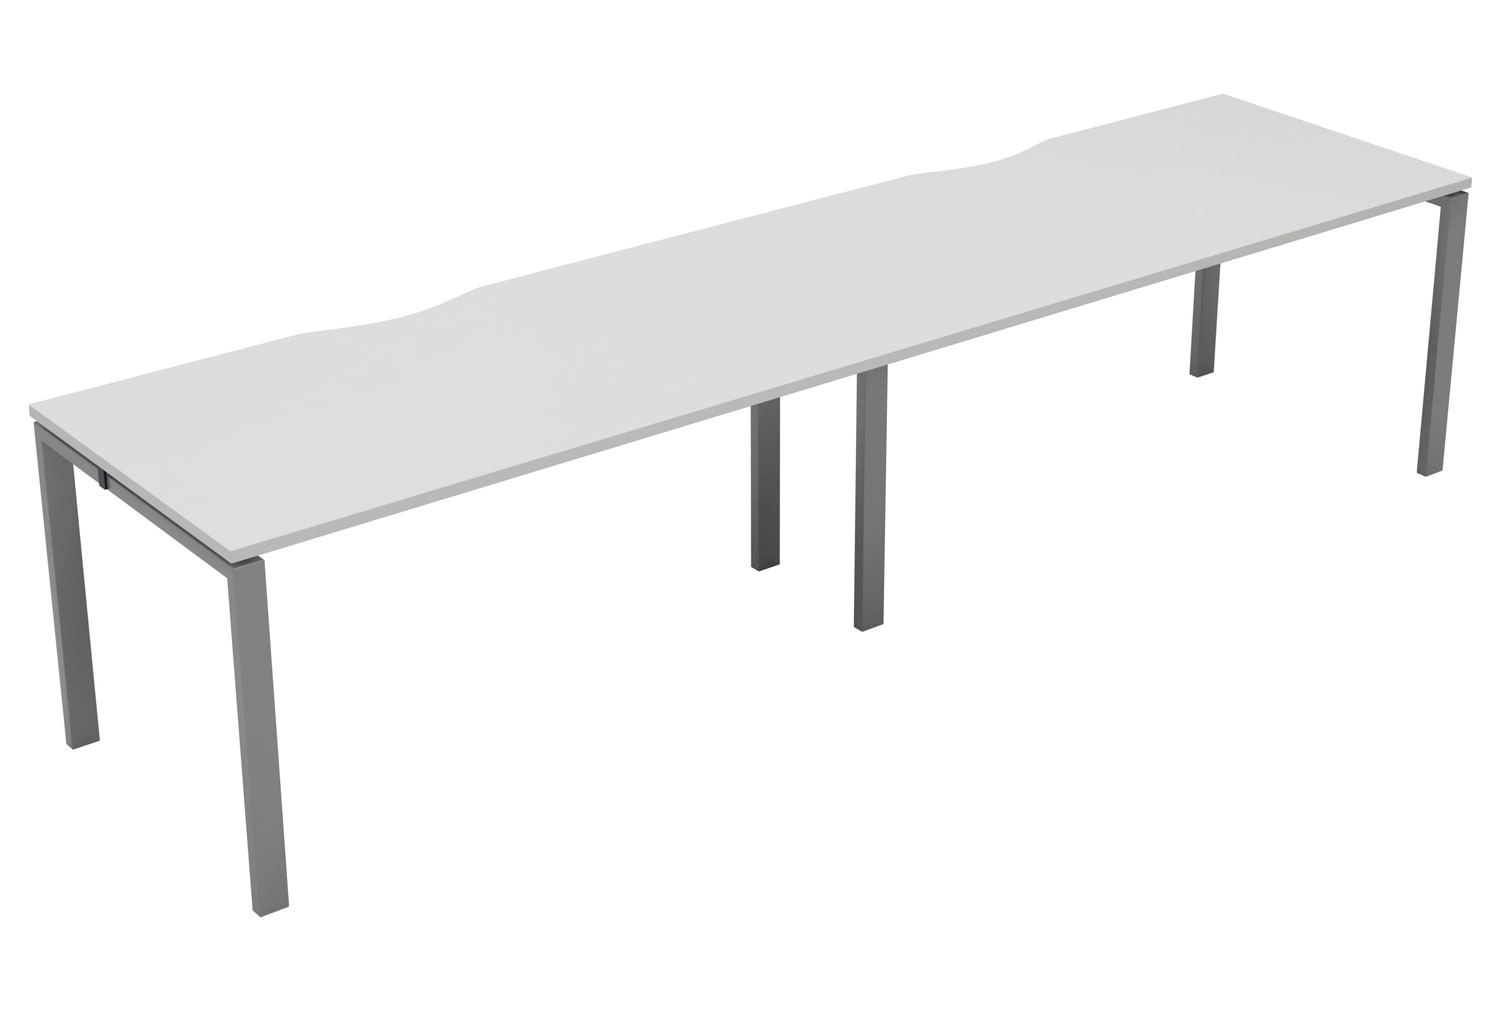 Fellow 2 Person Side By Side Bench Desk